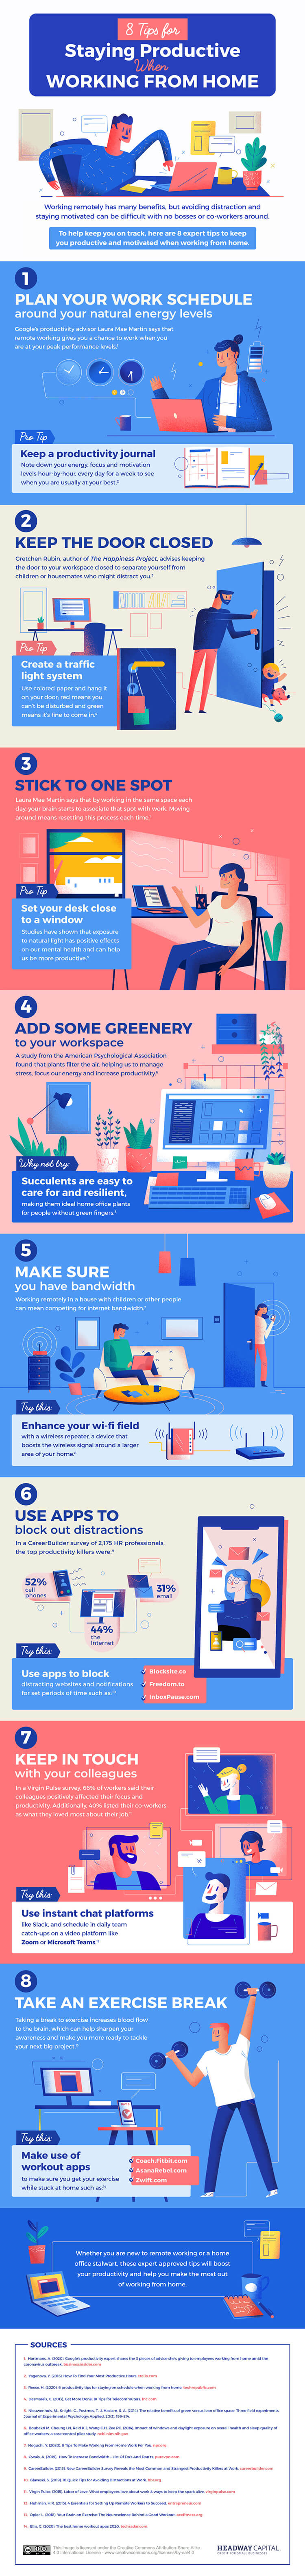 Headway Capital infographic showing eight ways to stay productive while working from home.